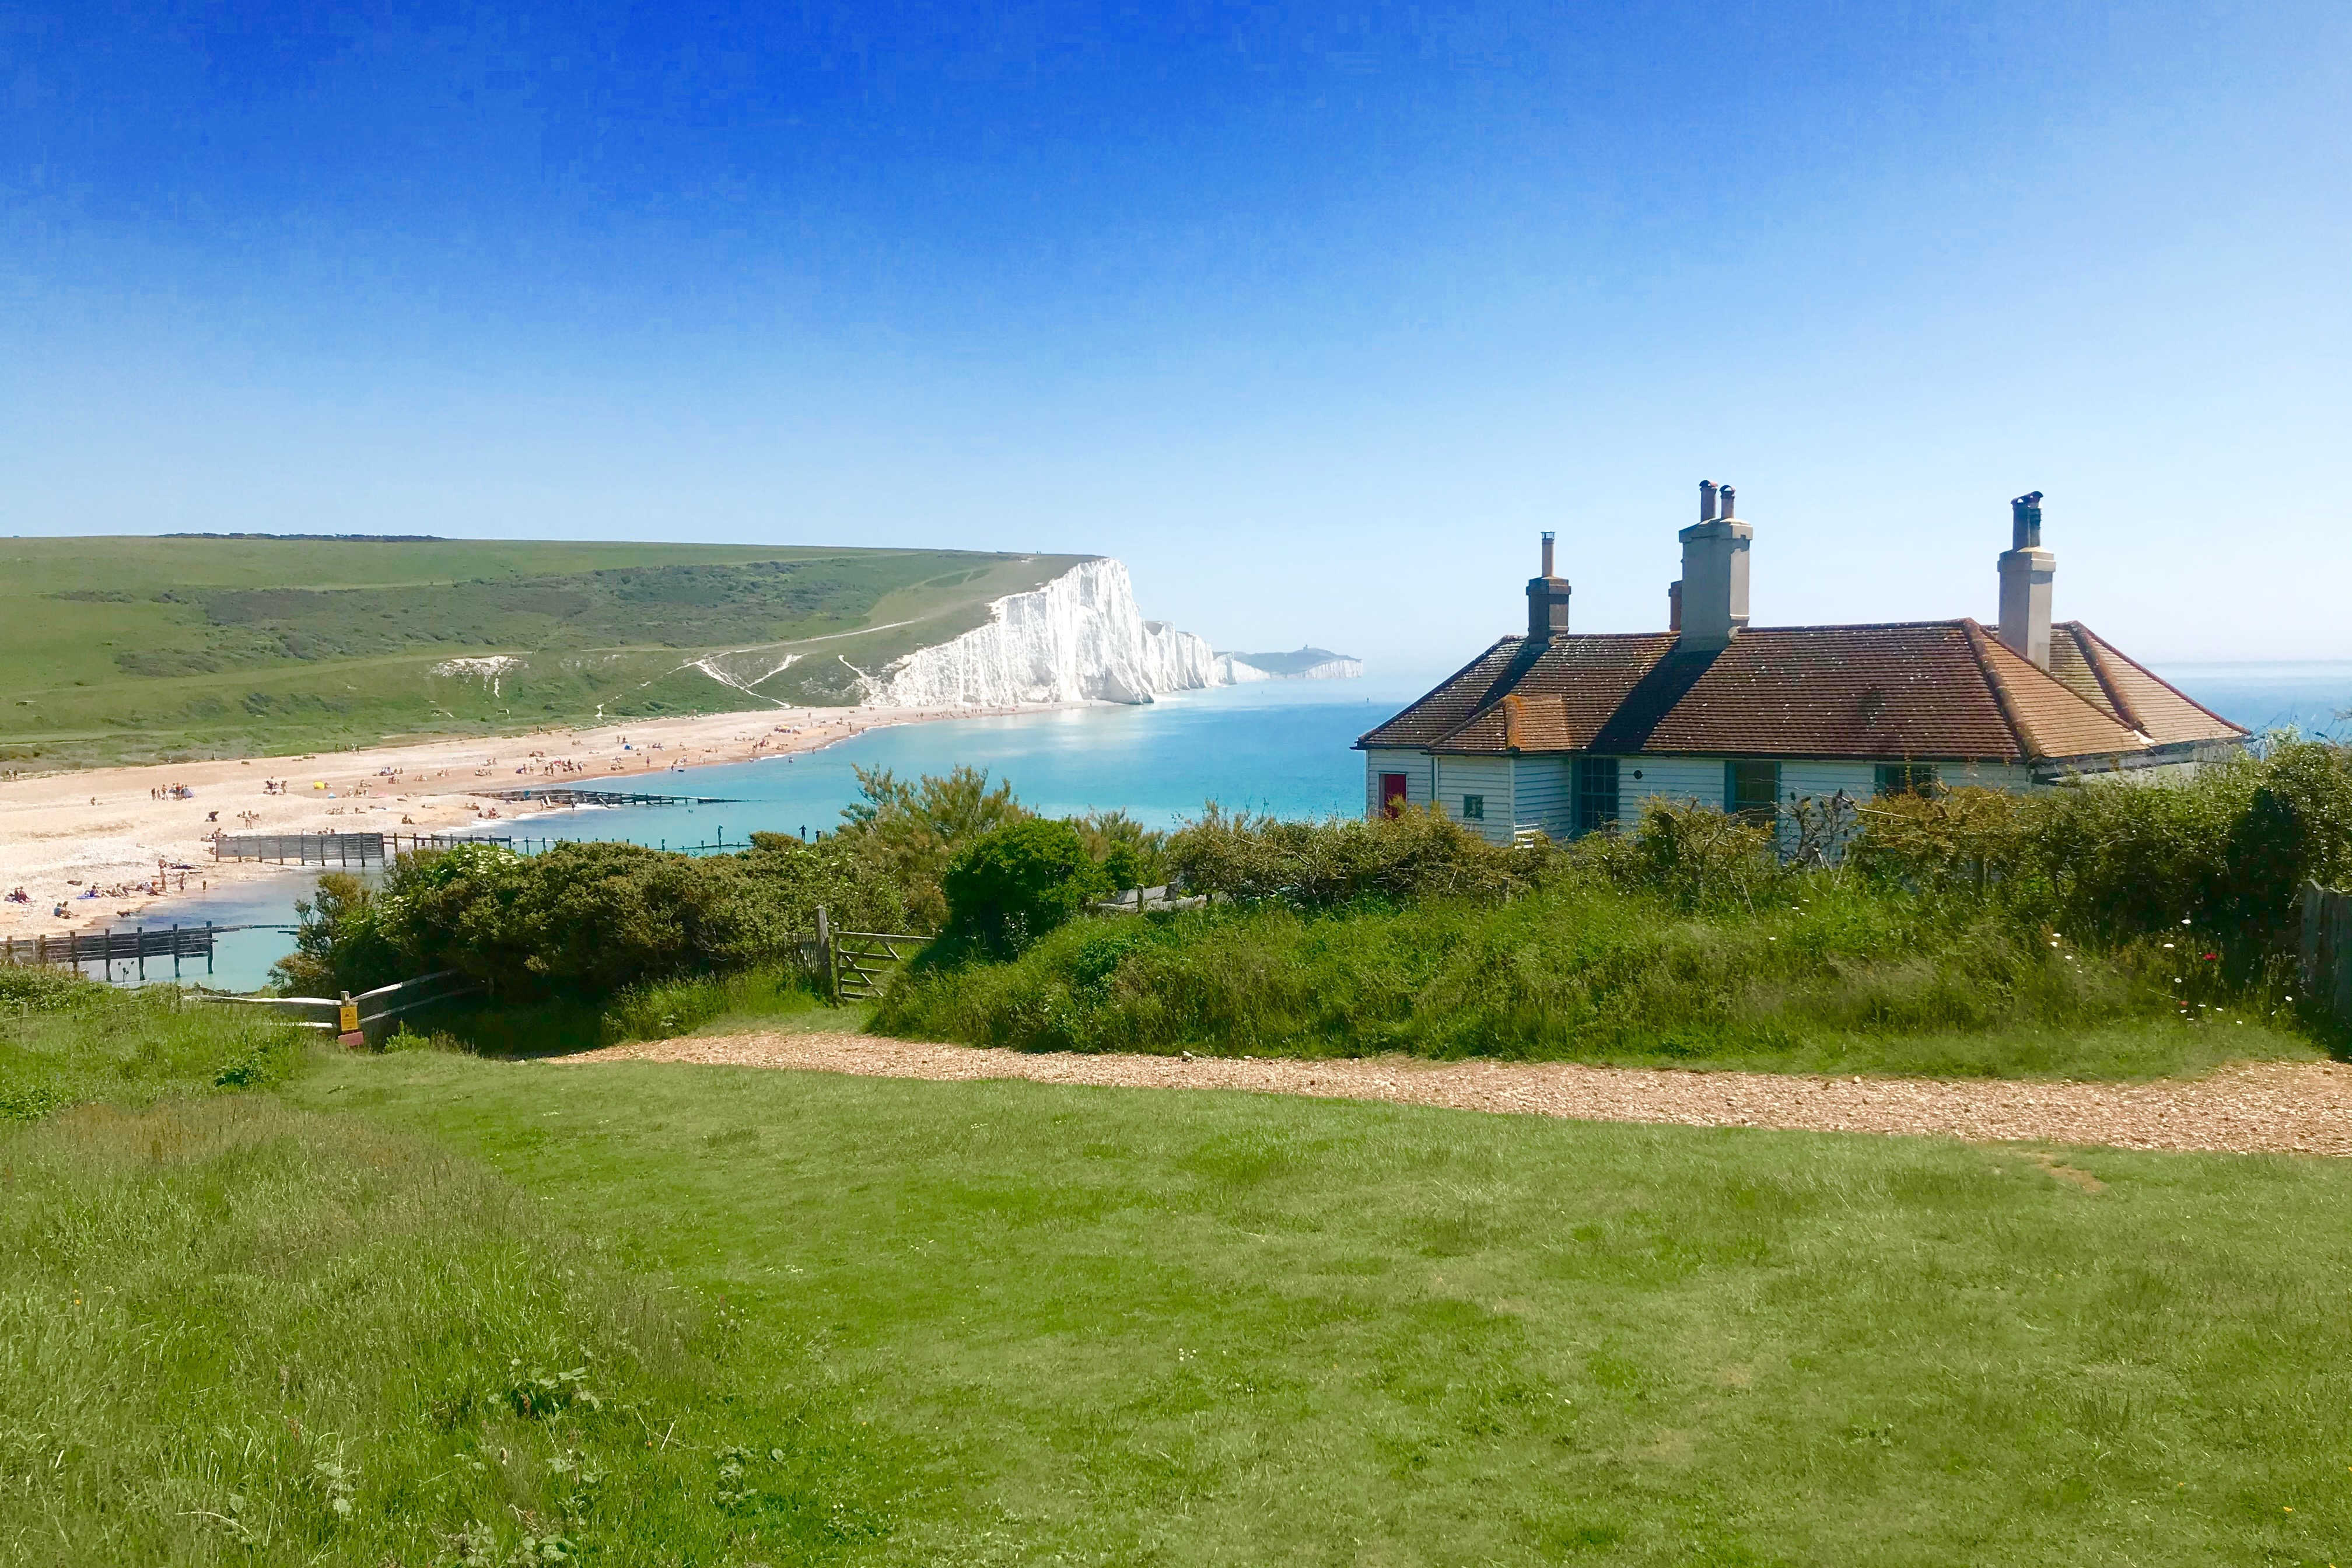 The Simply Stunning Seaford Hike